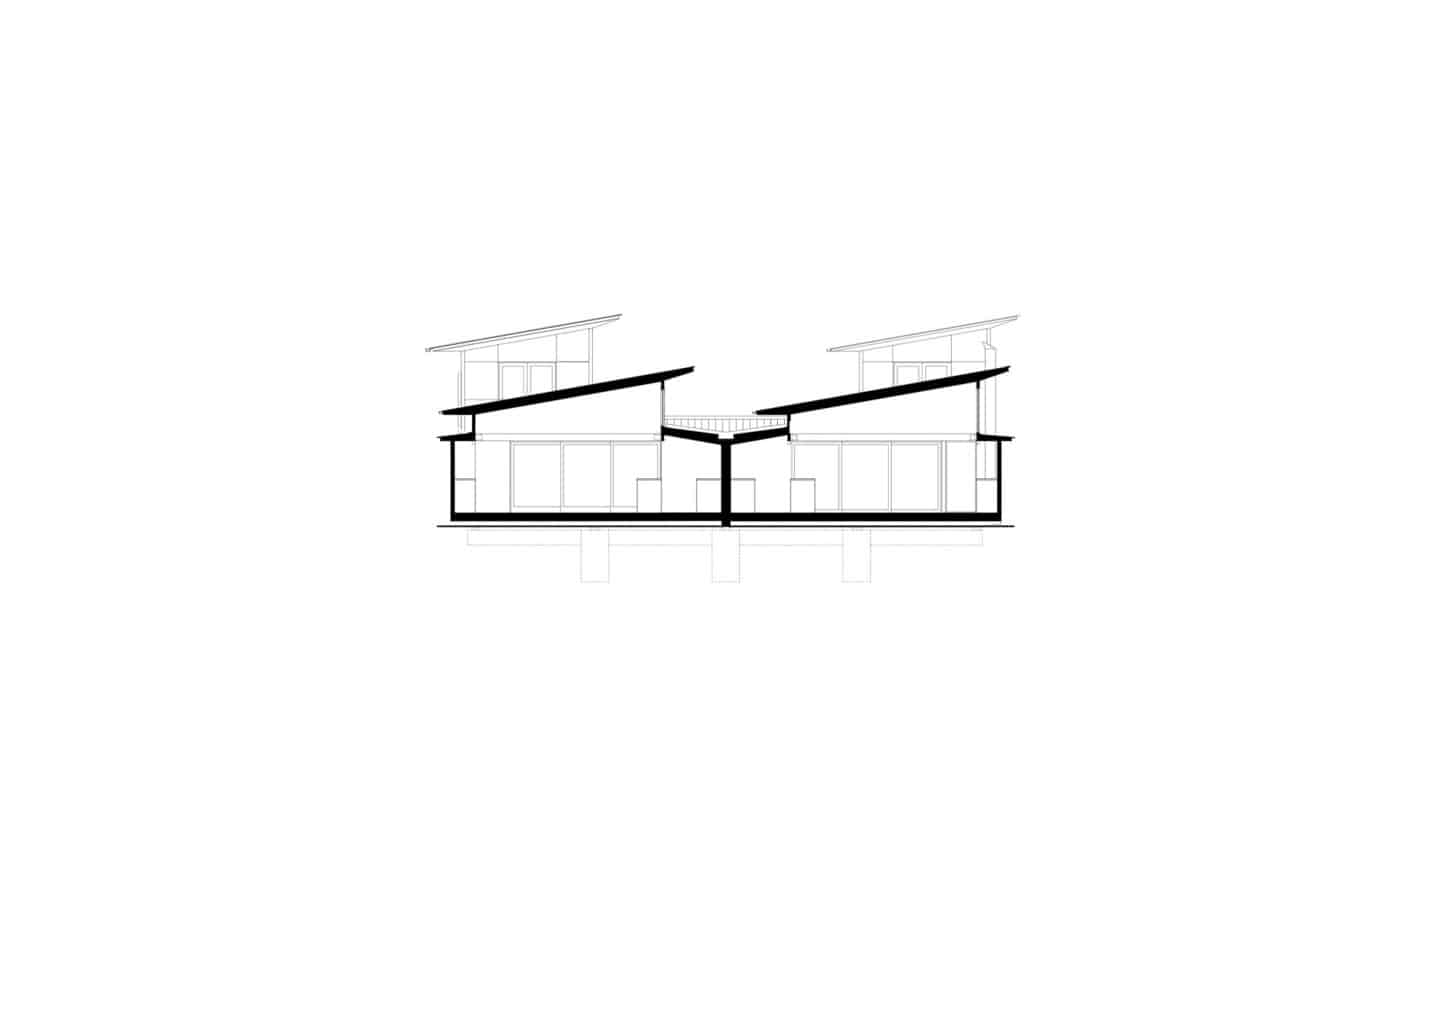 section sketch of bourne blue boomerang beach architecture